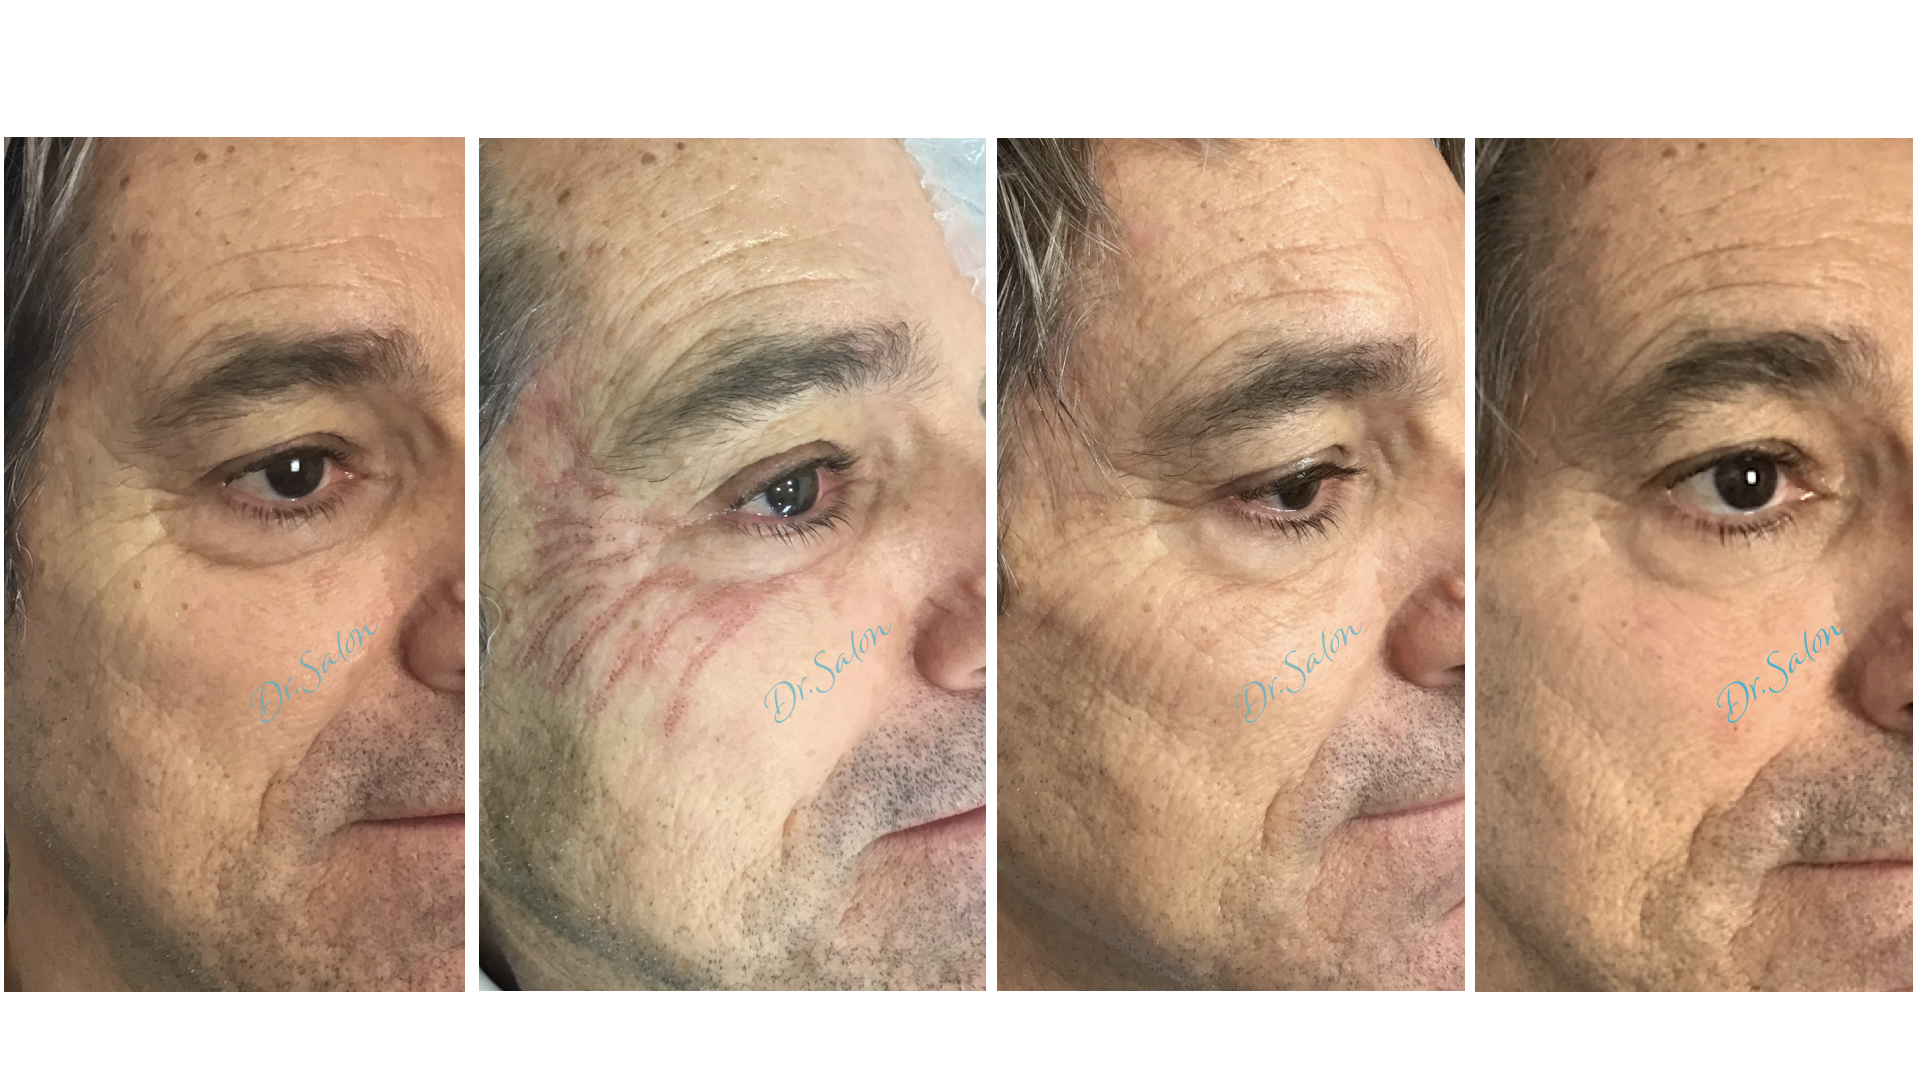 Plasmage wrinkle reduction before, during and after